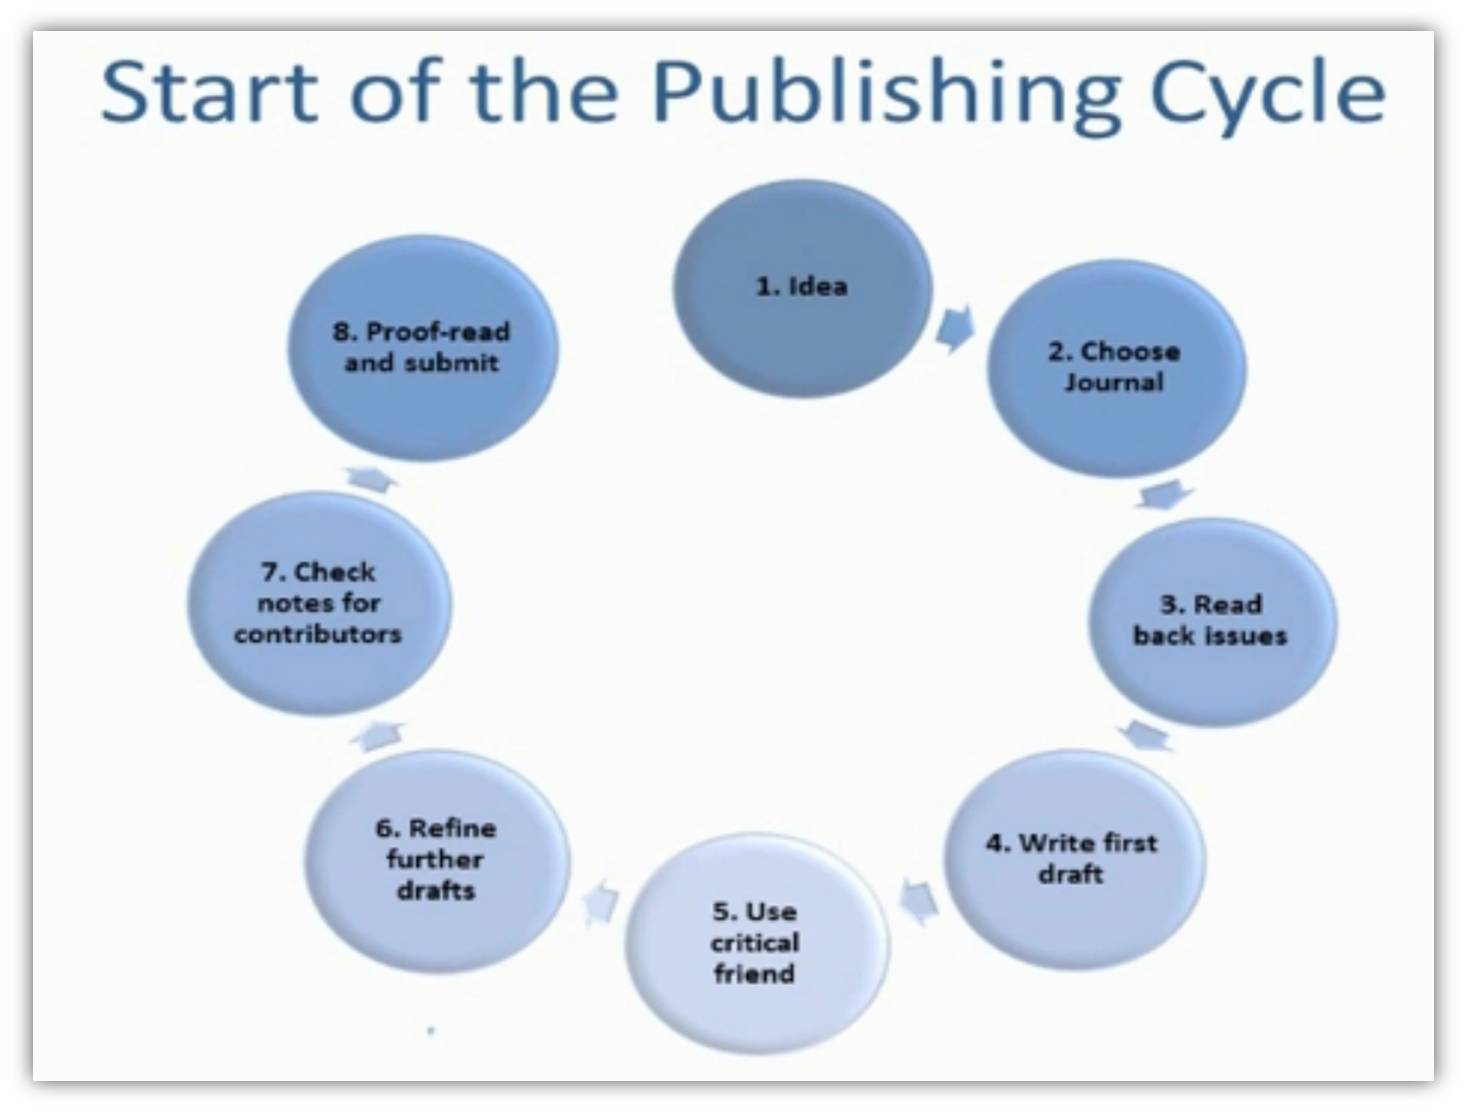 004 Journals To Publish Researchs Publishing Cycle Beautiful Research Papers International Paper In India List Of Best Full